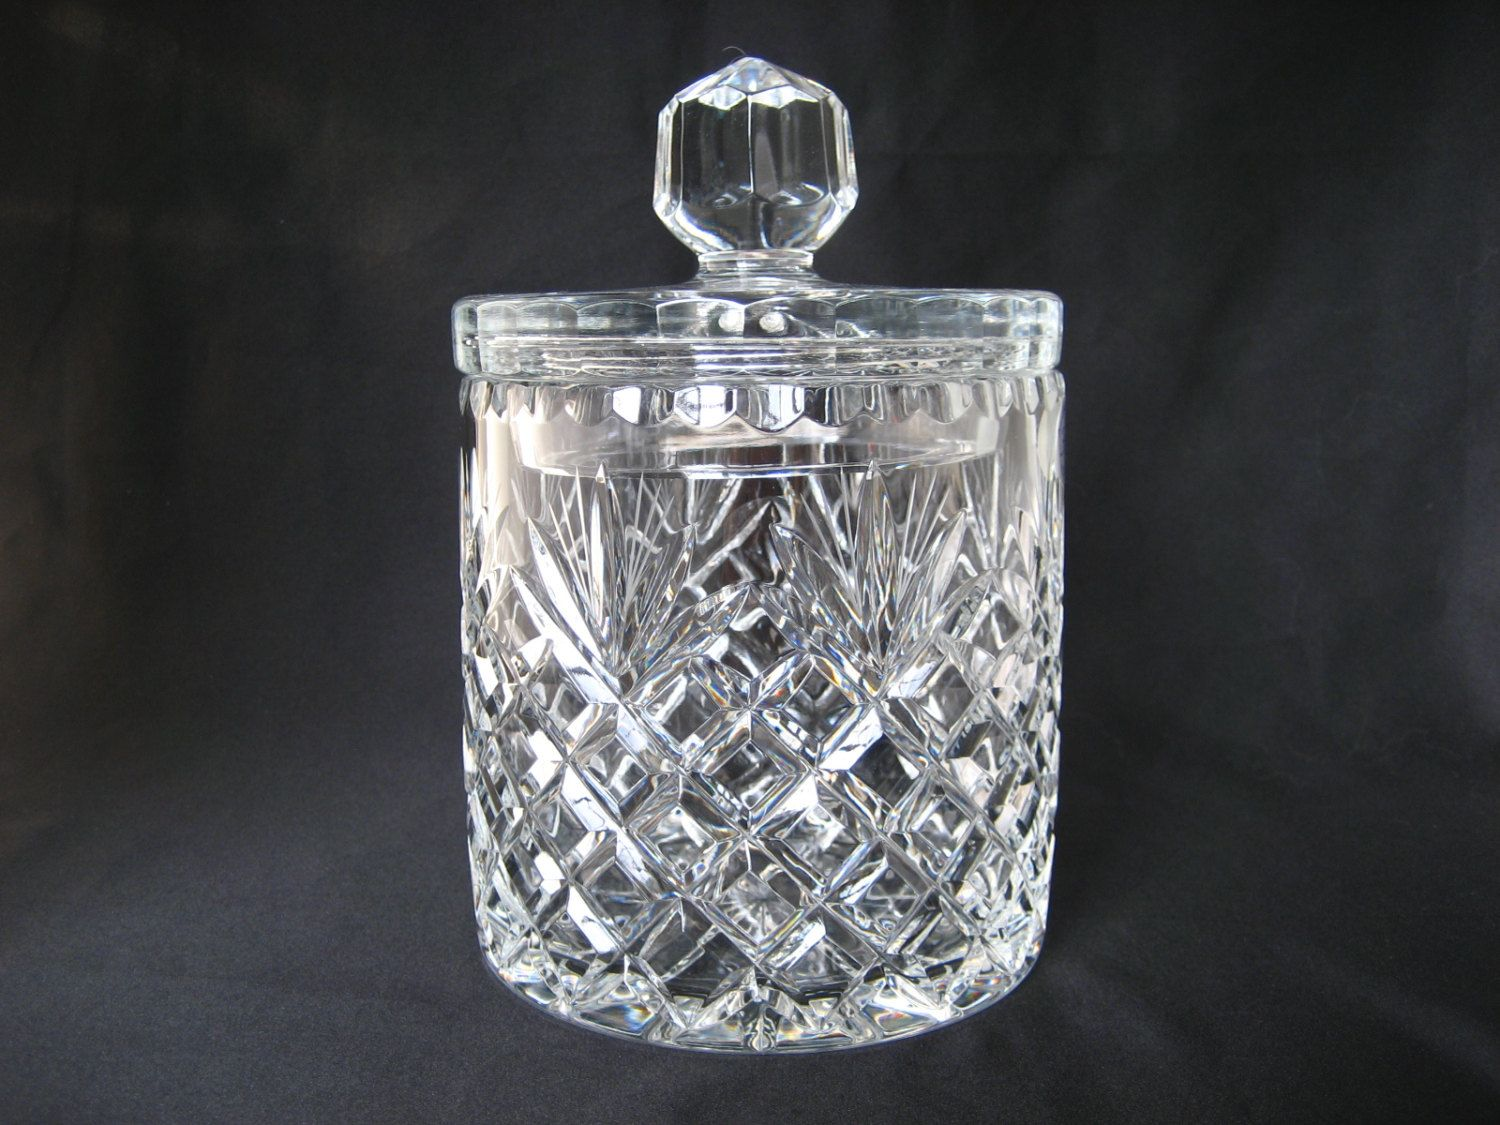 Huge Glass Cookie Jar Vintage Clear Crystal Glass Cookie Jar With Lid Lidded